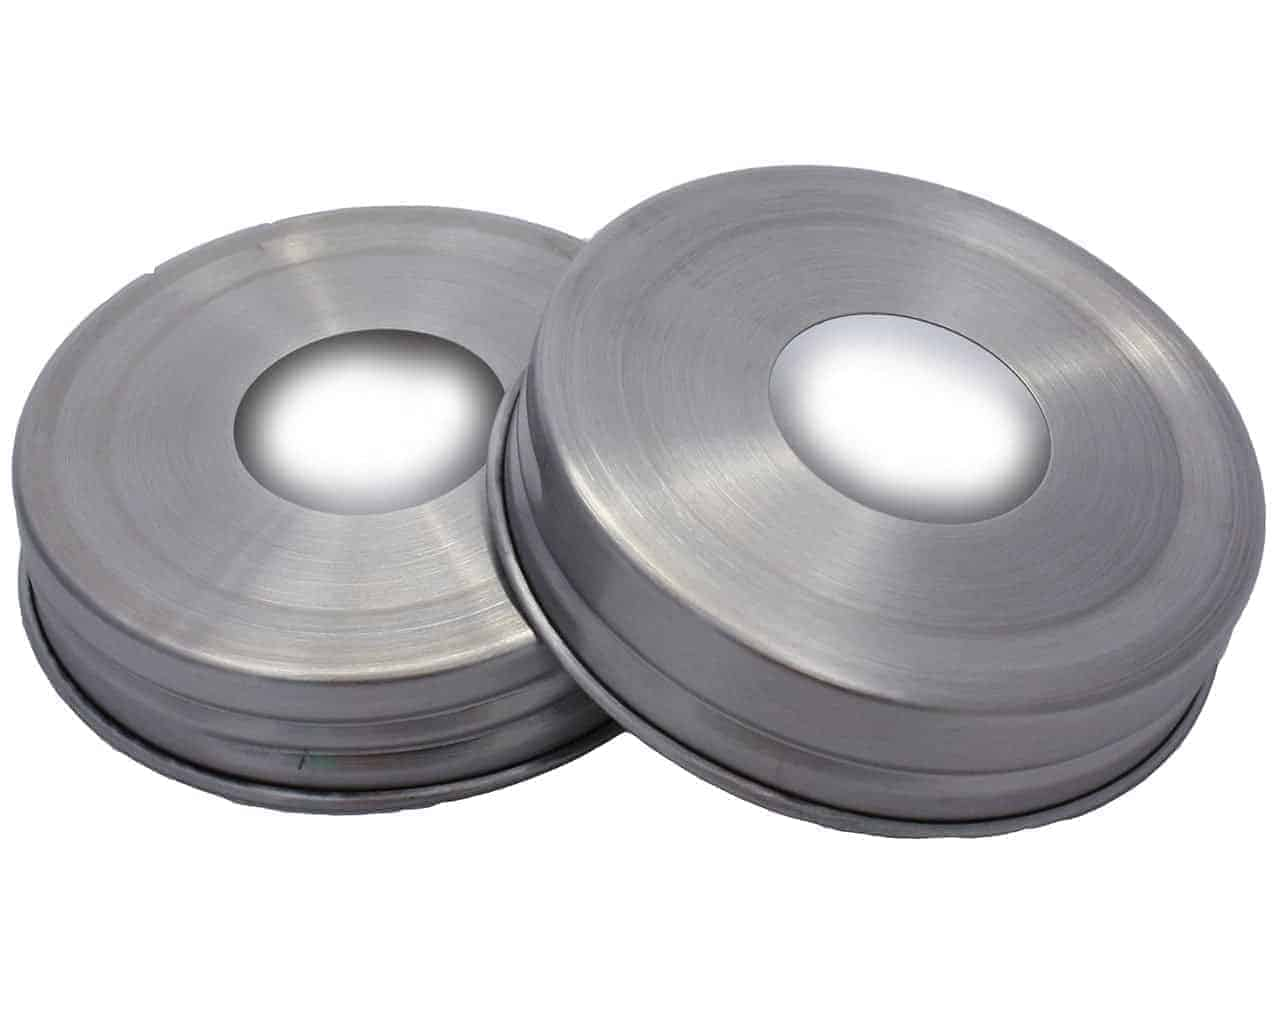 Stainless Steel Soap Dispenser Lid Adapters For Mason Jars